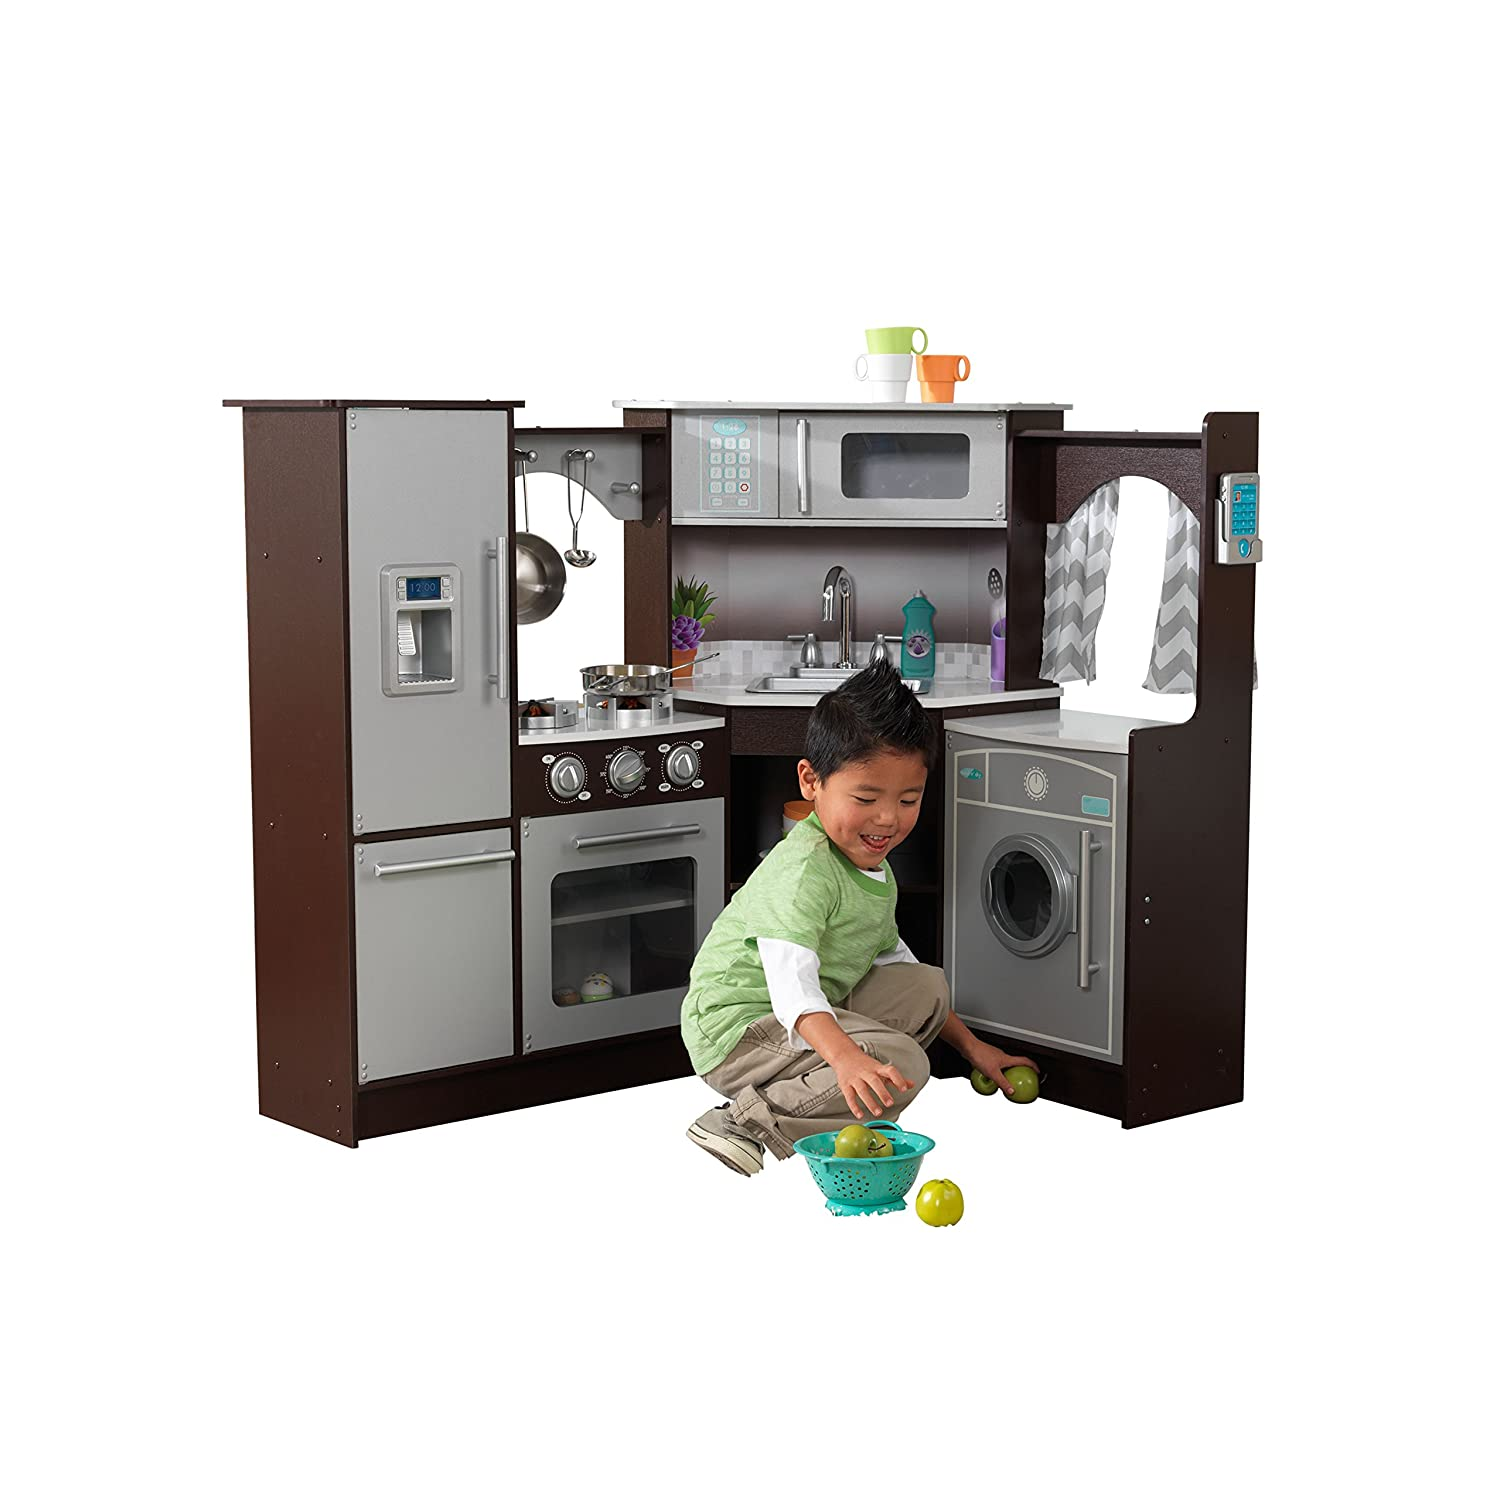 Top 9 Best Kitchen Set for Toddlers Reviews in 2021 11